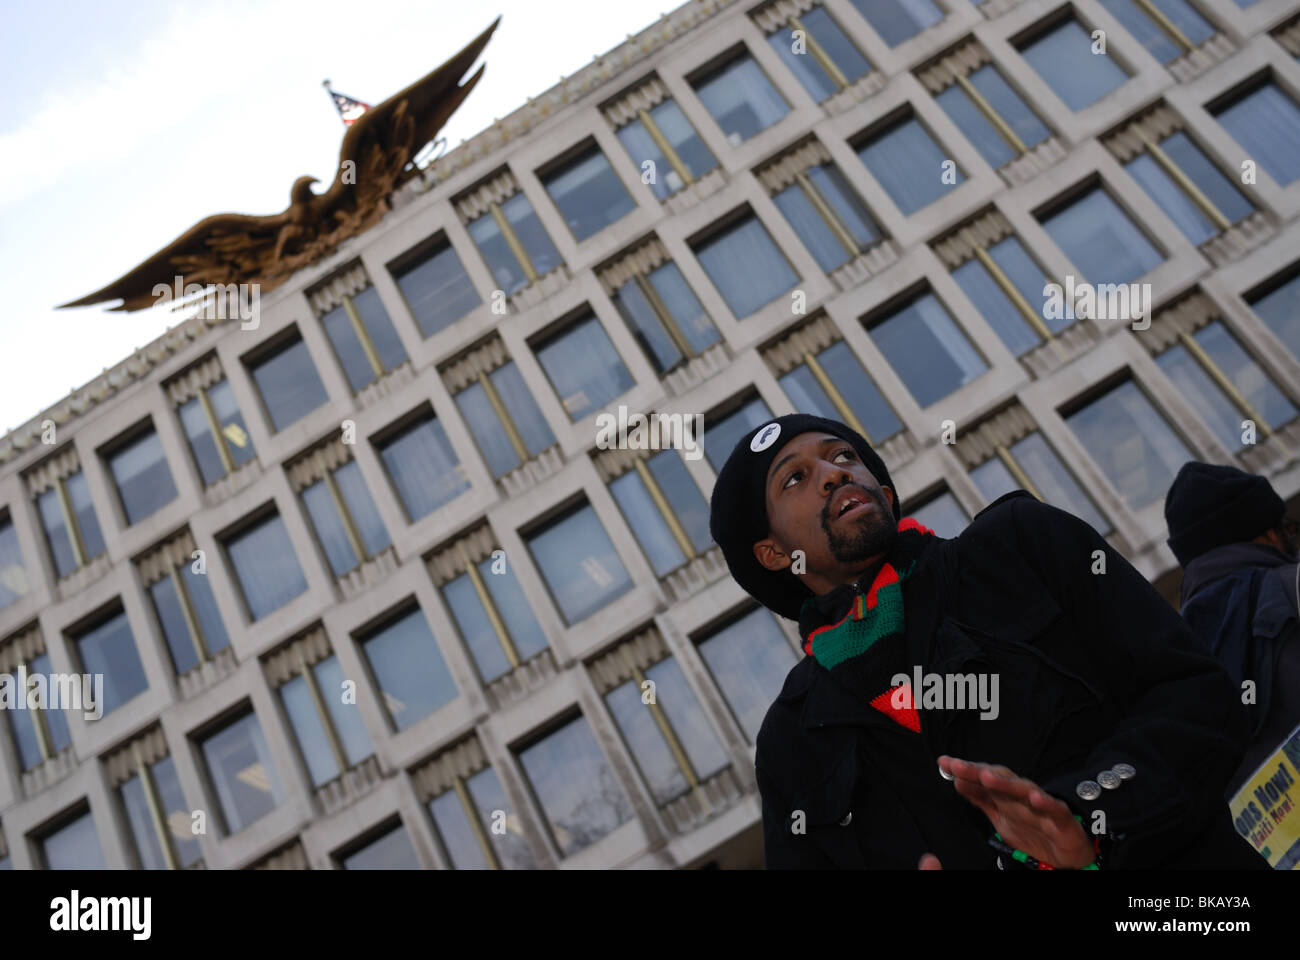 A Haitian man stands outside the US Embassy in London during a protest demanding justice for Haiti. Stock Photo